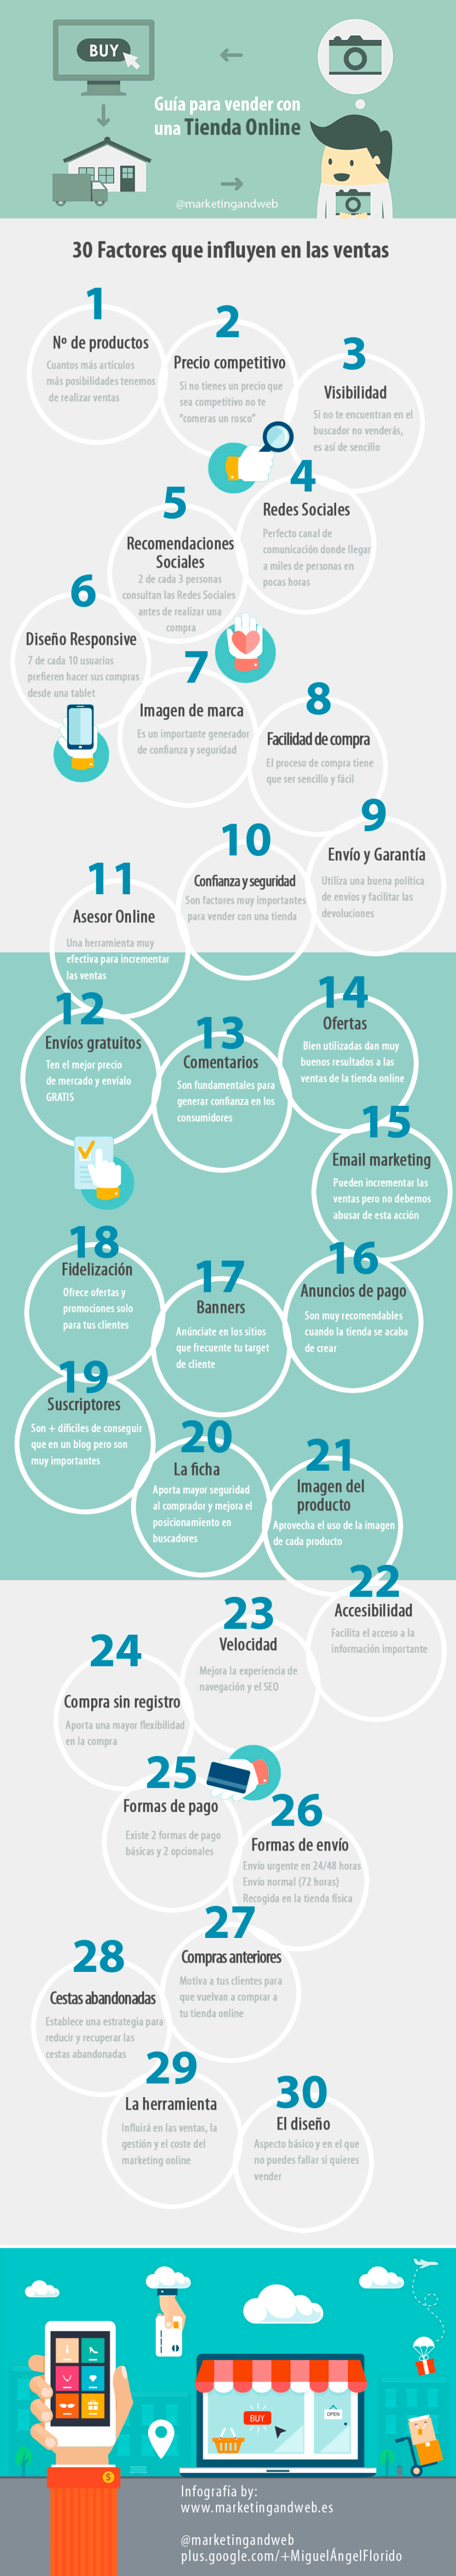 30 tips for selling in your online store #infografia #ecommerce #advertising and marketing